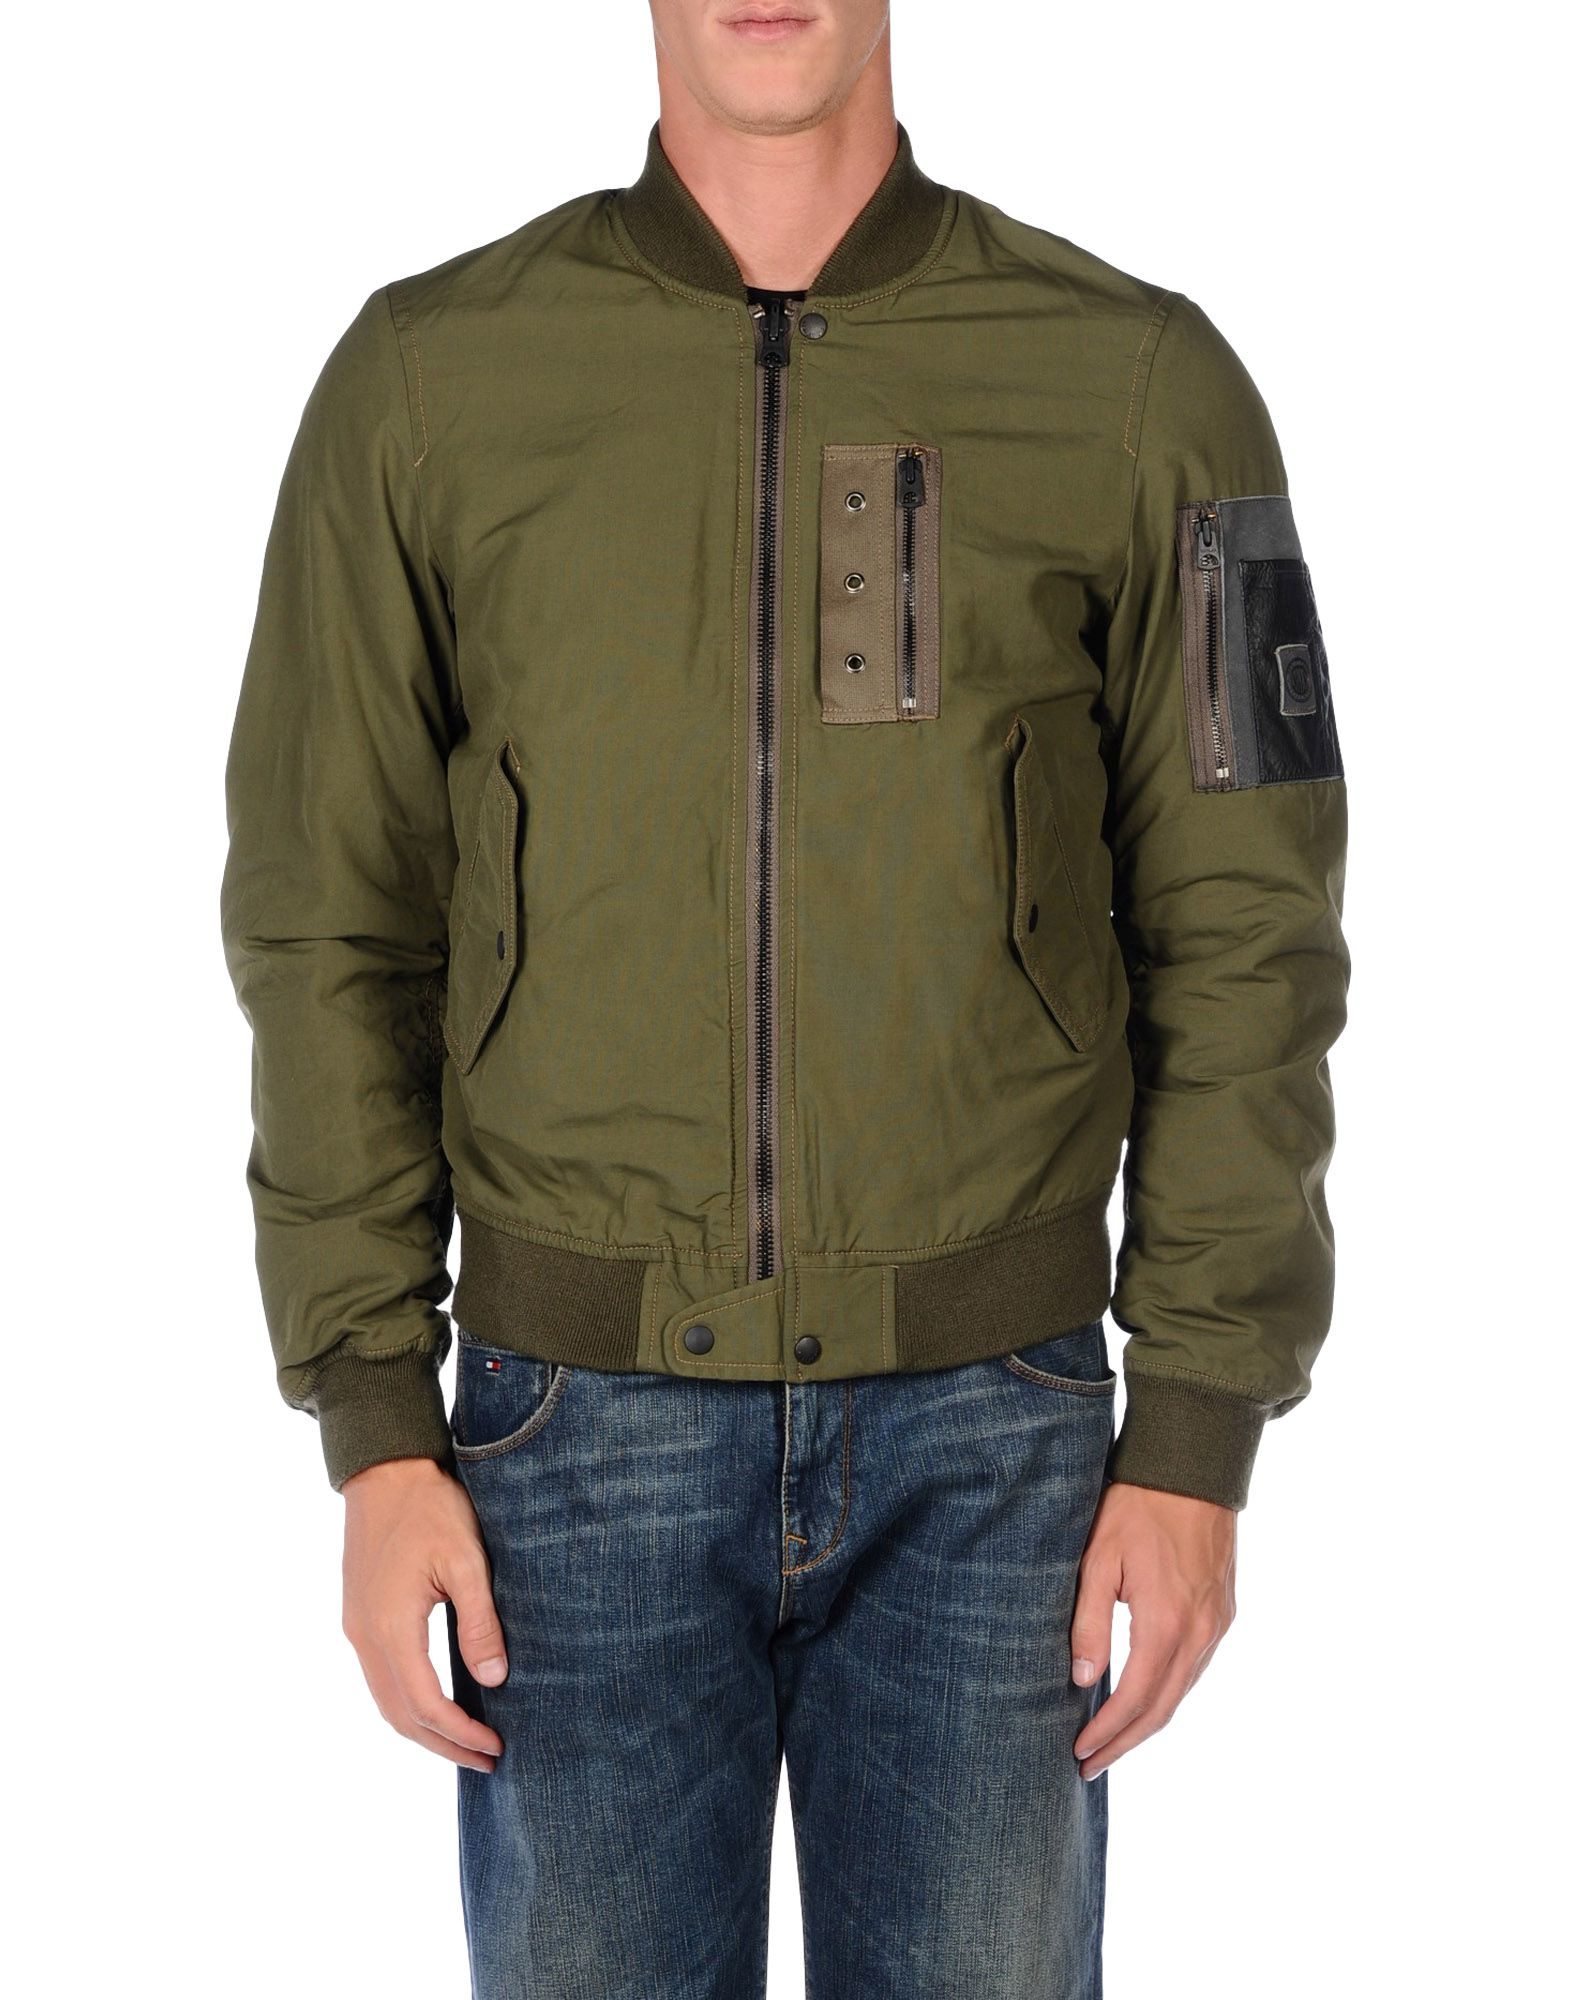 Replay Jacket In Green For Men Lyst